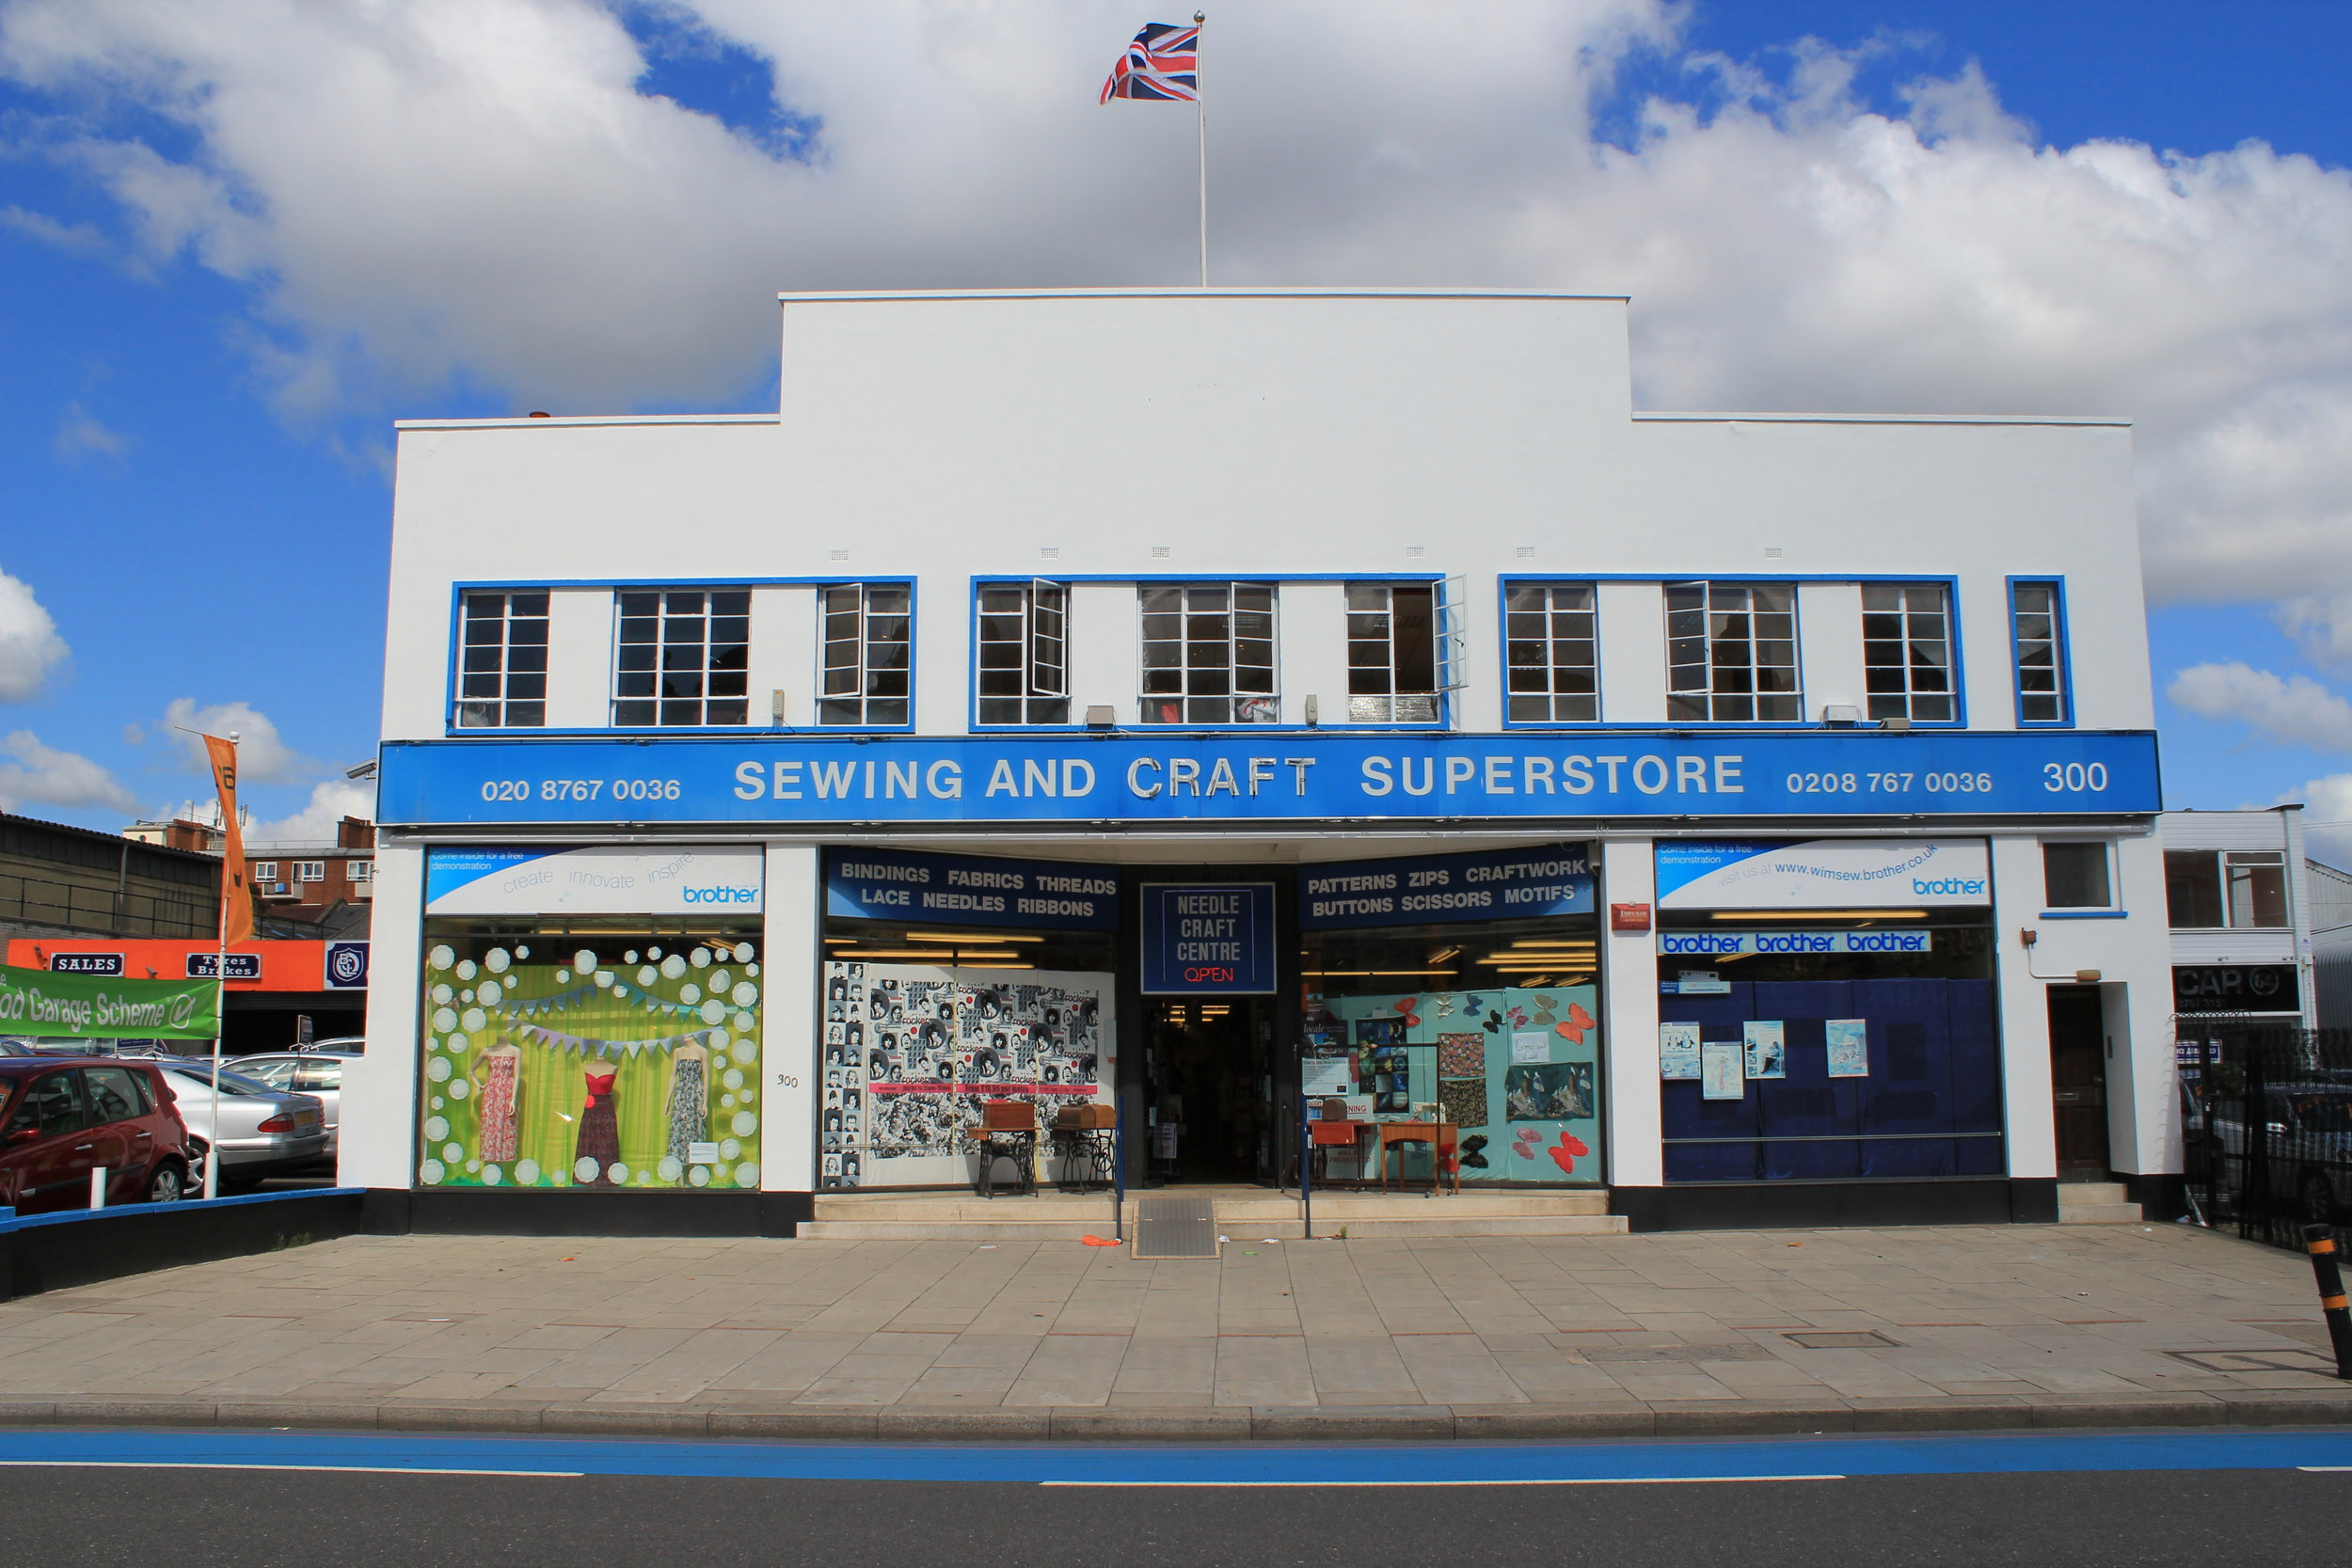 Sewing and Craft Superstore Haberdashery and Fabric Shop in Balham South London Club Card 3.JPG